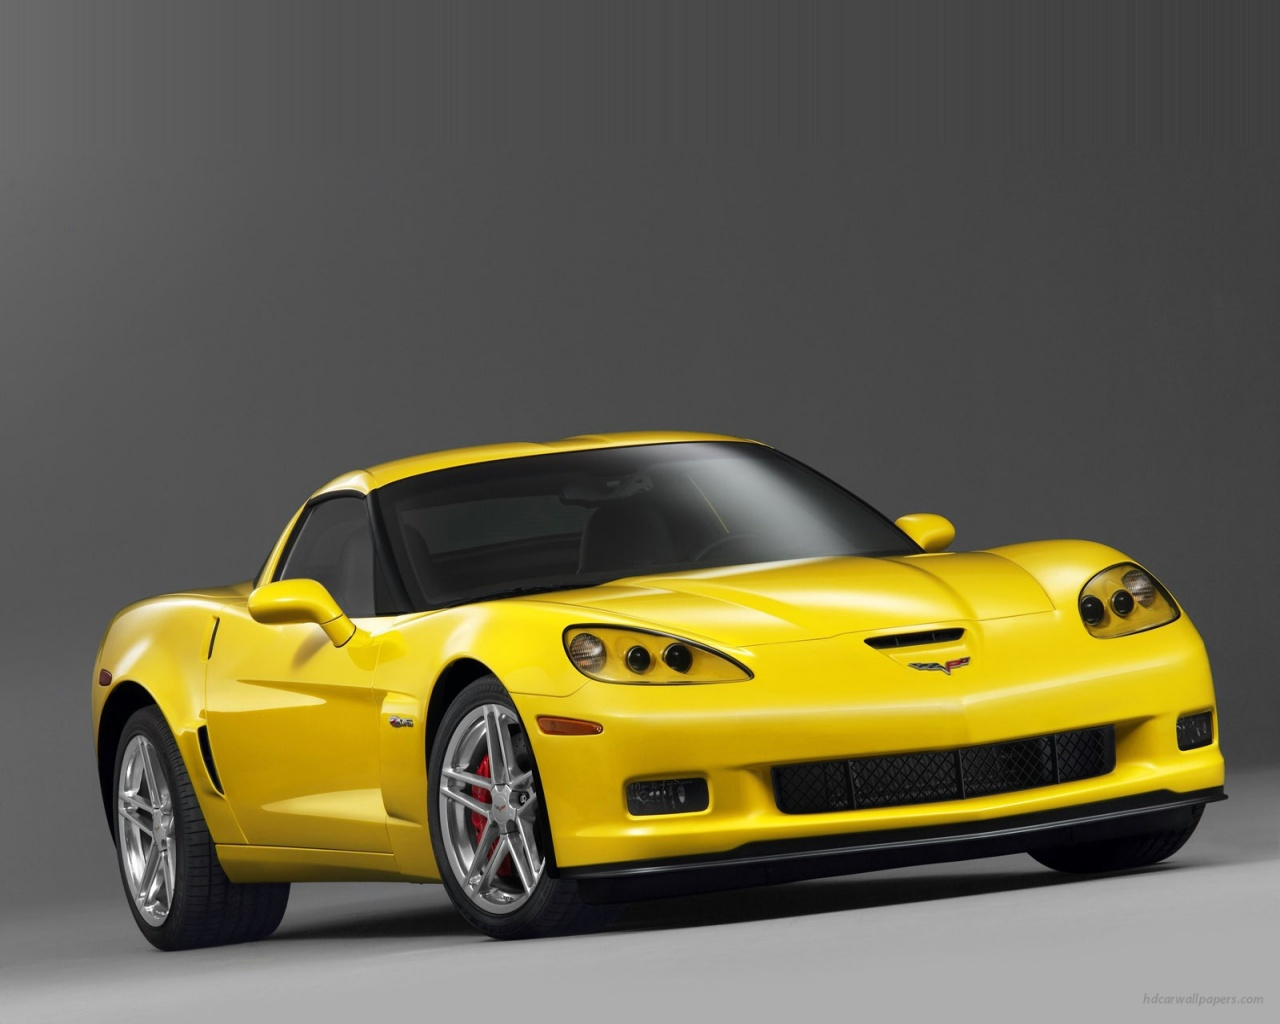 2014 Chevrolet <b>Corvette</b> Stingray Rear HD desktop <b>wallpaper</b> : <b>High</b> ...